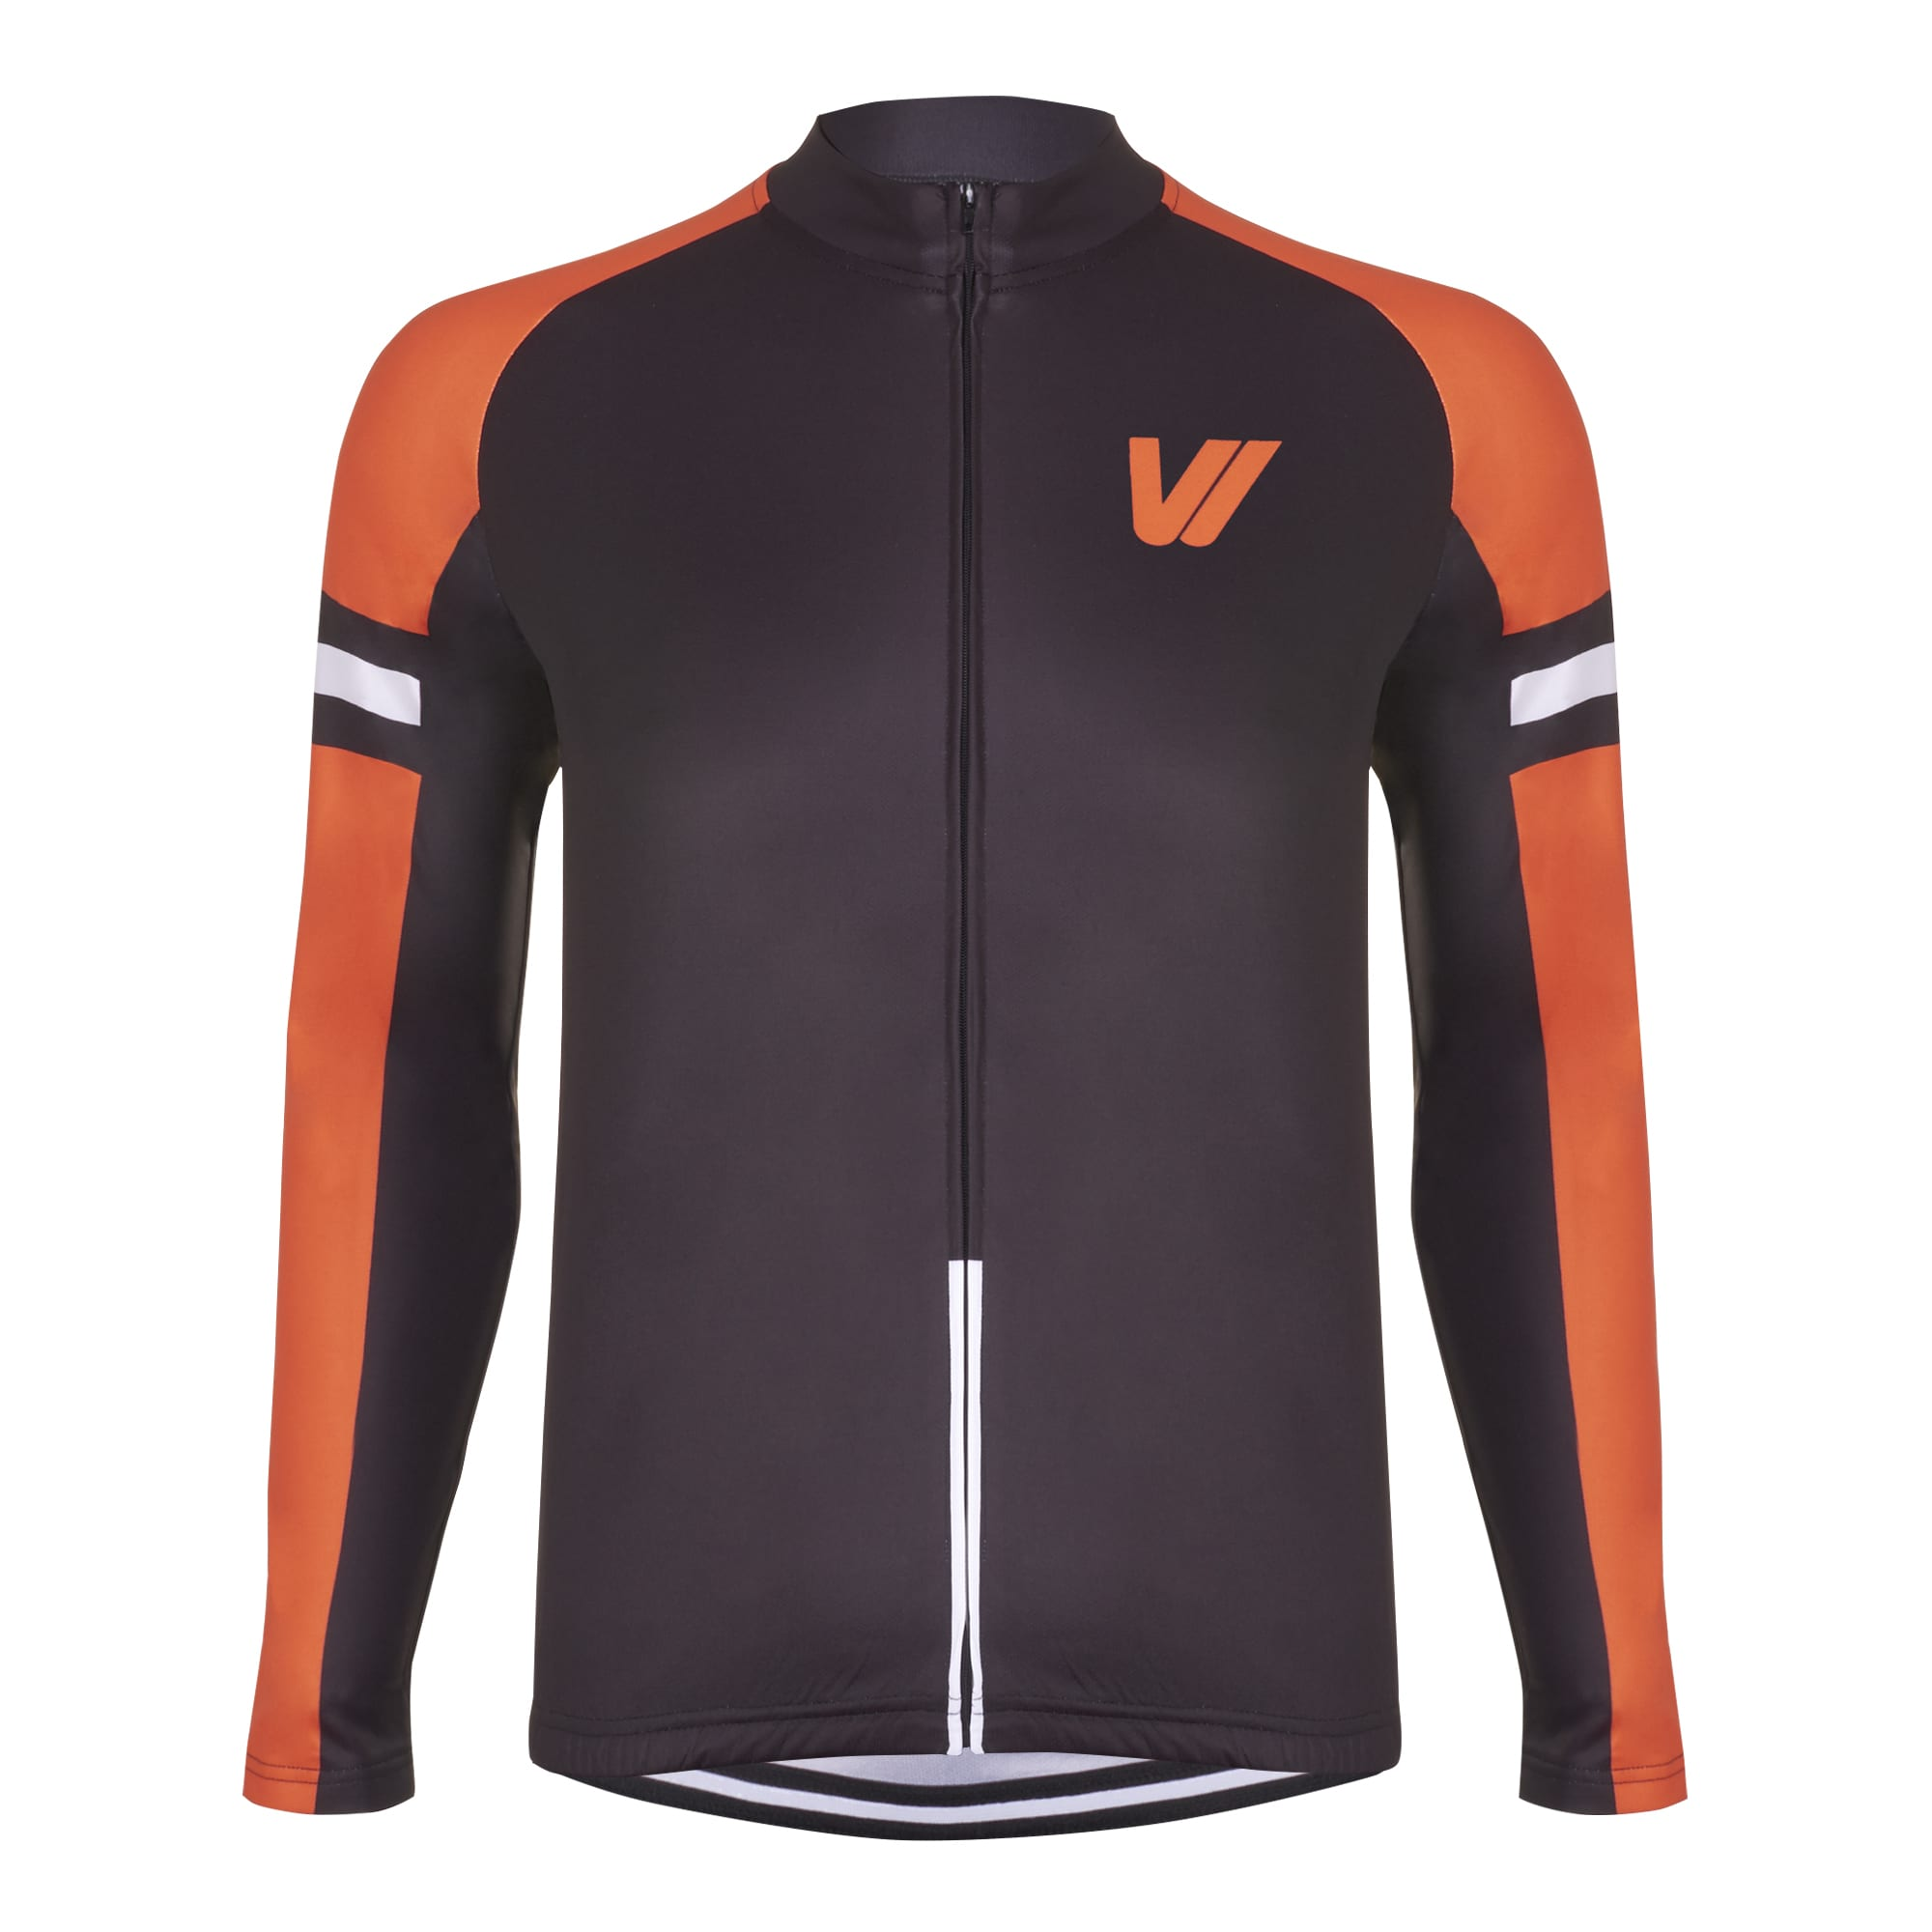 Men's Long Sleeve Cycling Jersey - Black & Orange